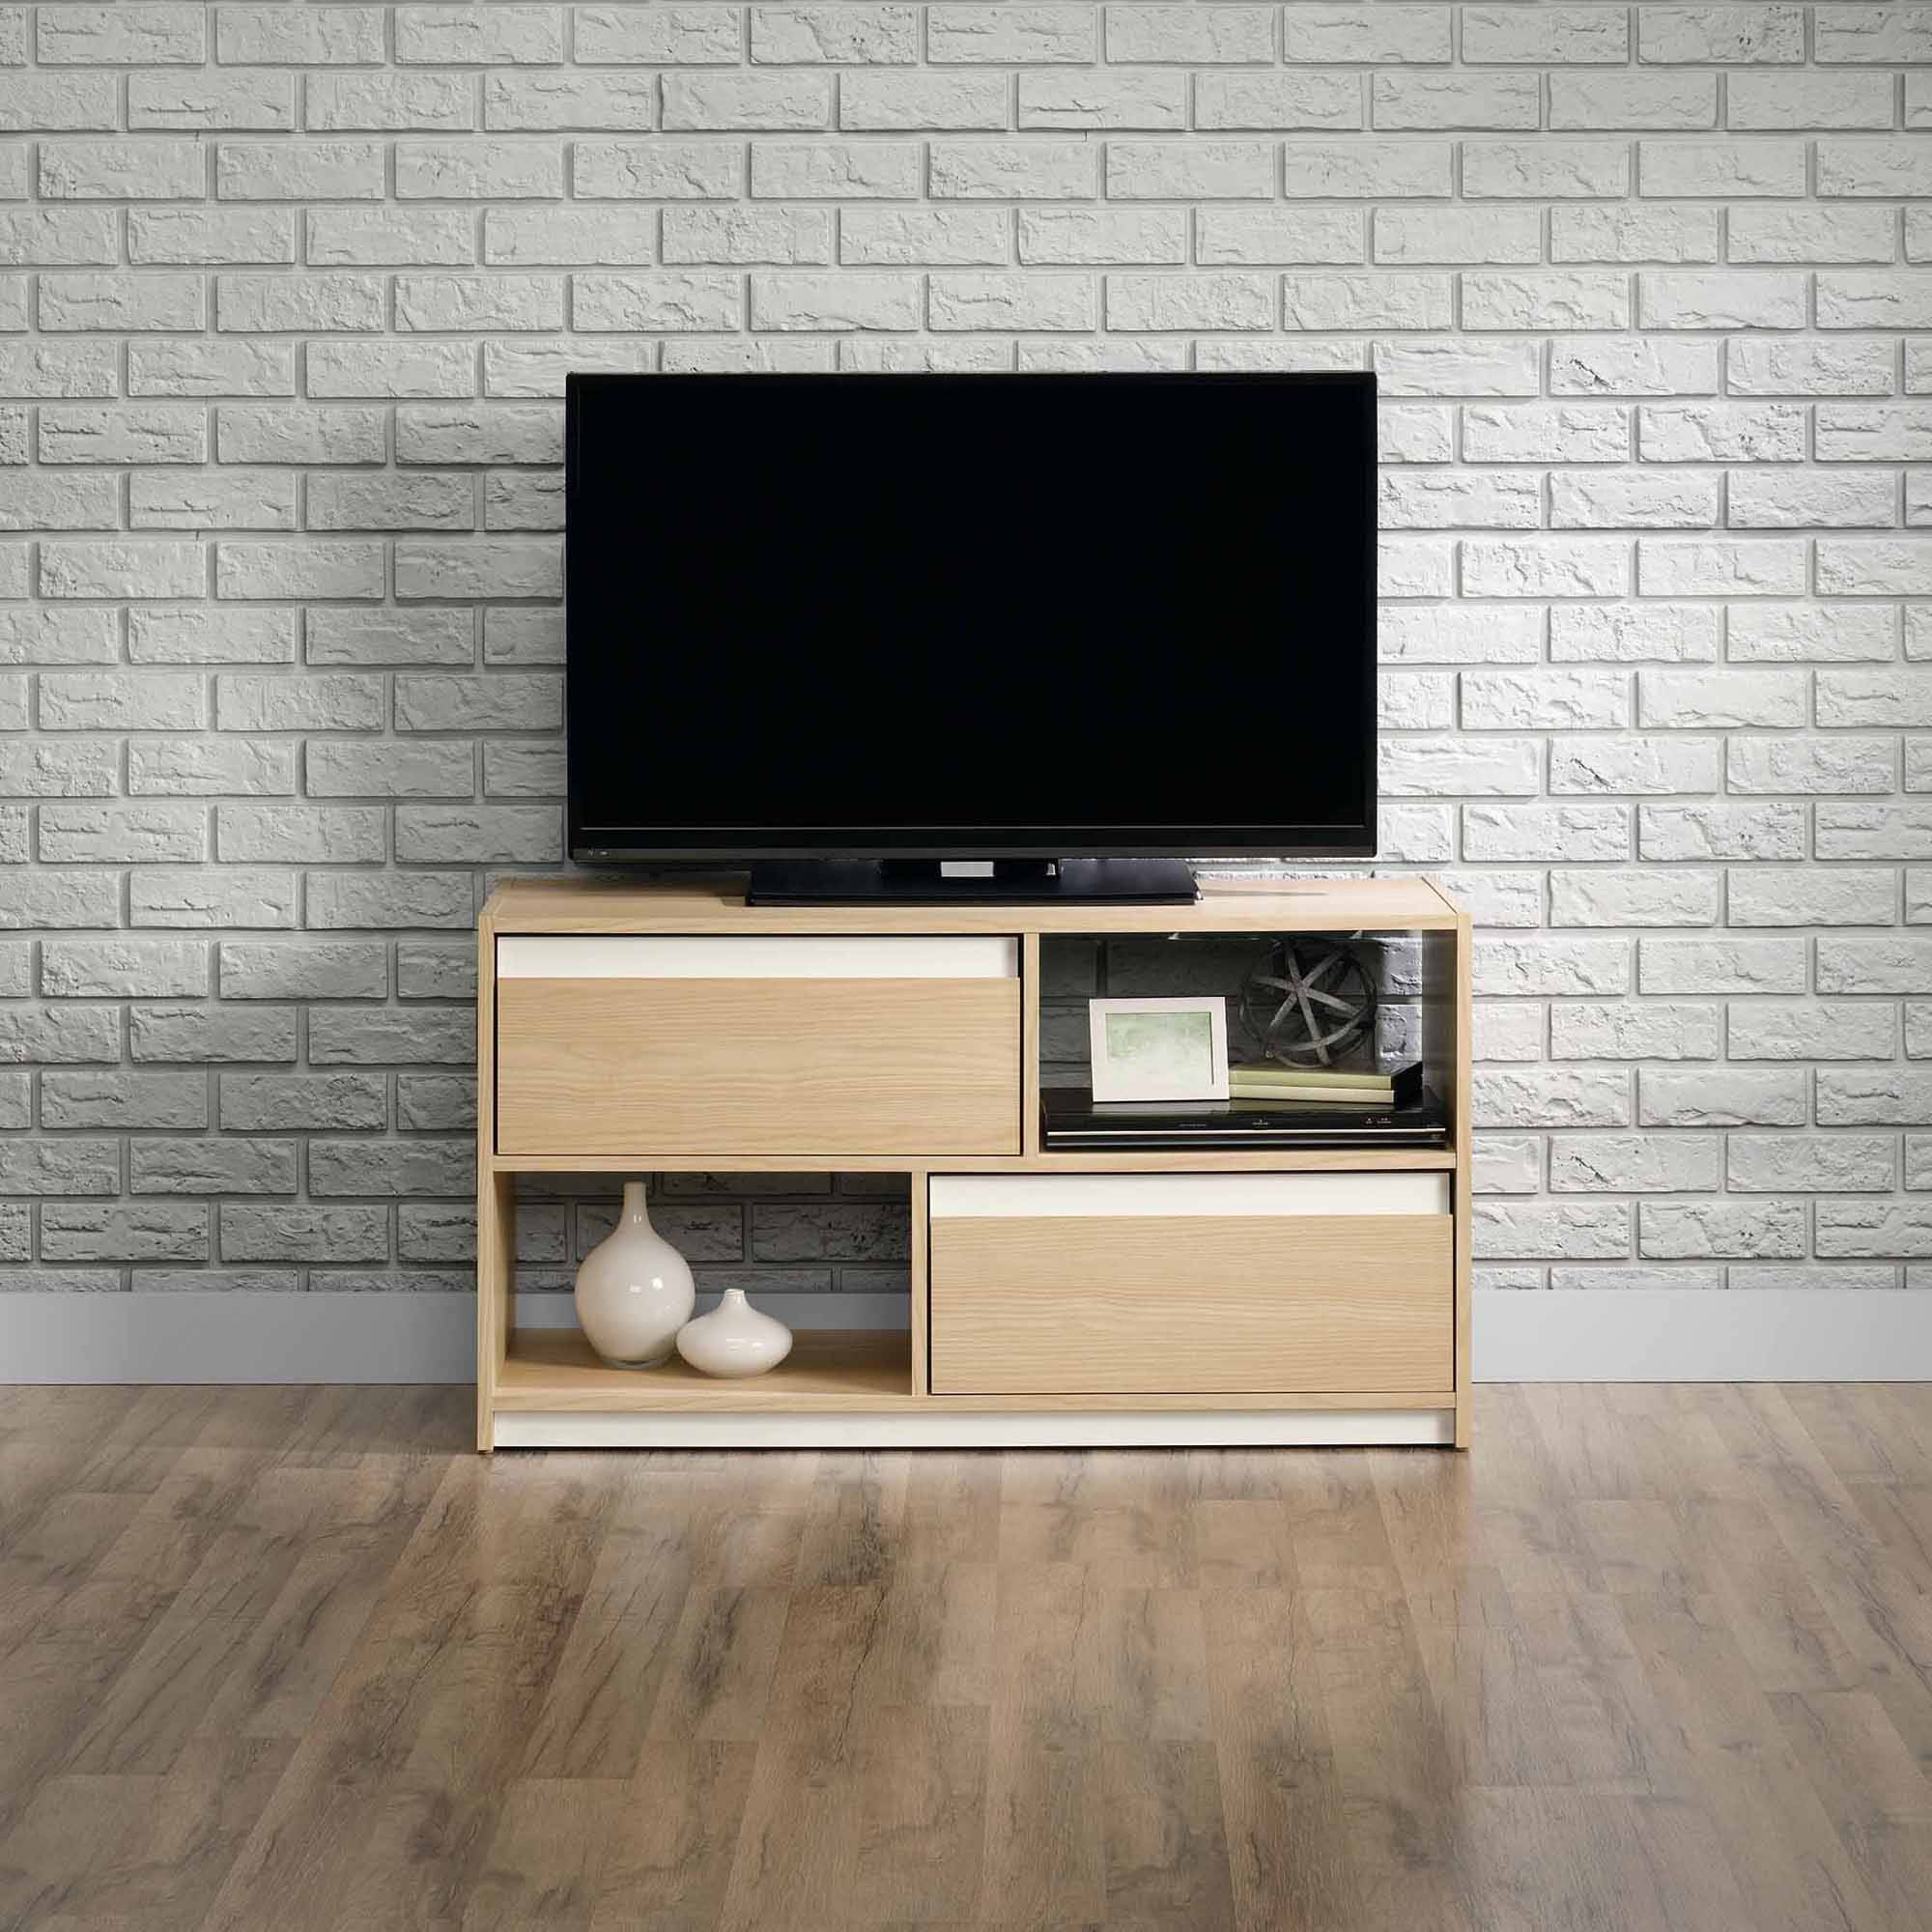 Sauder Square 1 Urban Ash TV Stand for TVs up to 47""